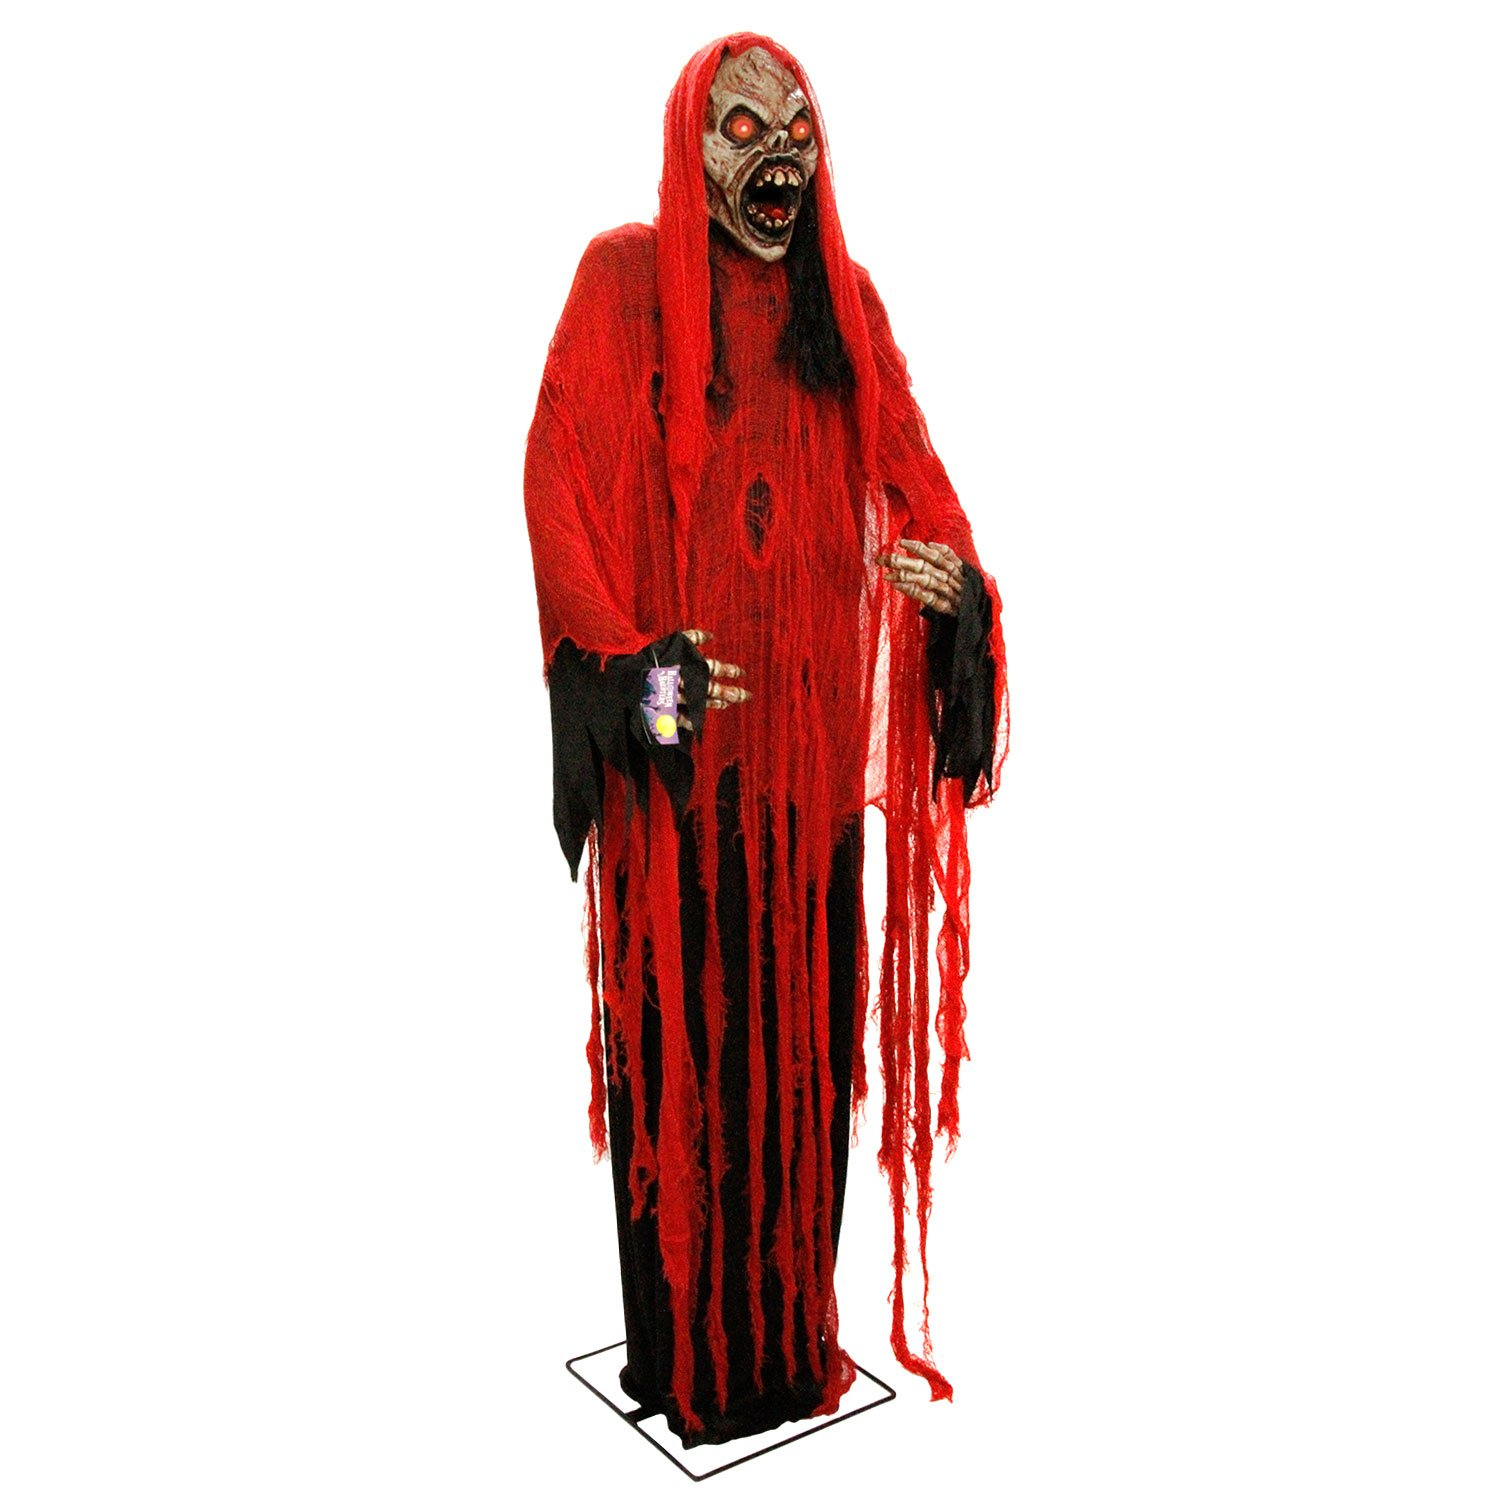 Halloween Haunters Giant 7 Foot Animated Standing Moving Scary Reaper of Death Prop Decoration - Rubber Latex Evil Face, Red Light Up Eyes - Animatronic Head & Arm Motion - Haunted House Graveyard